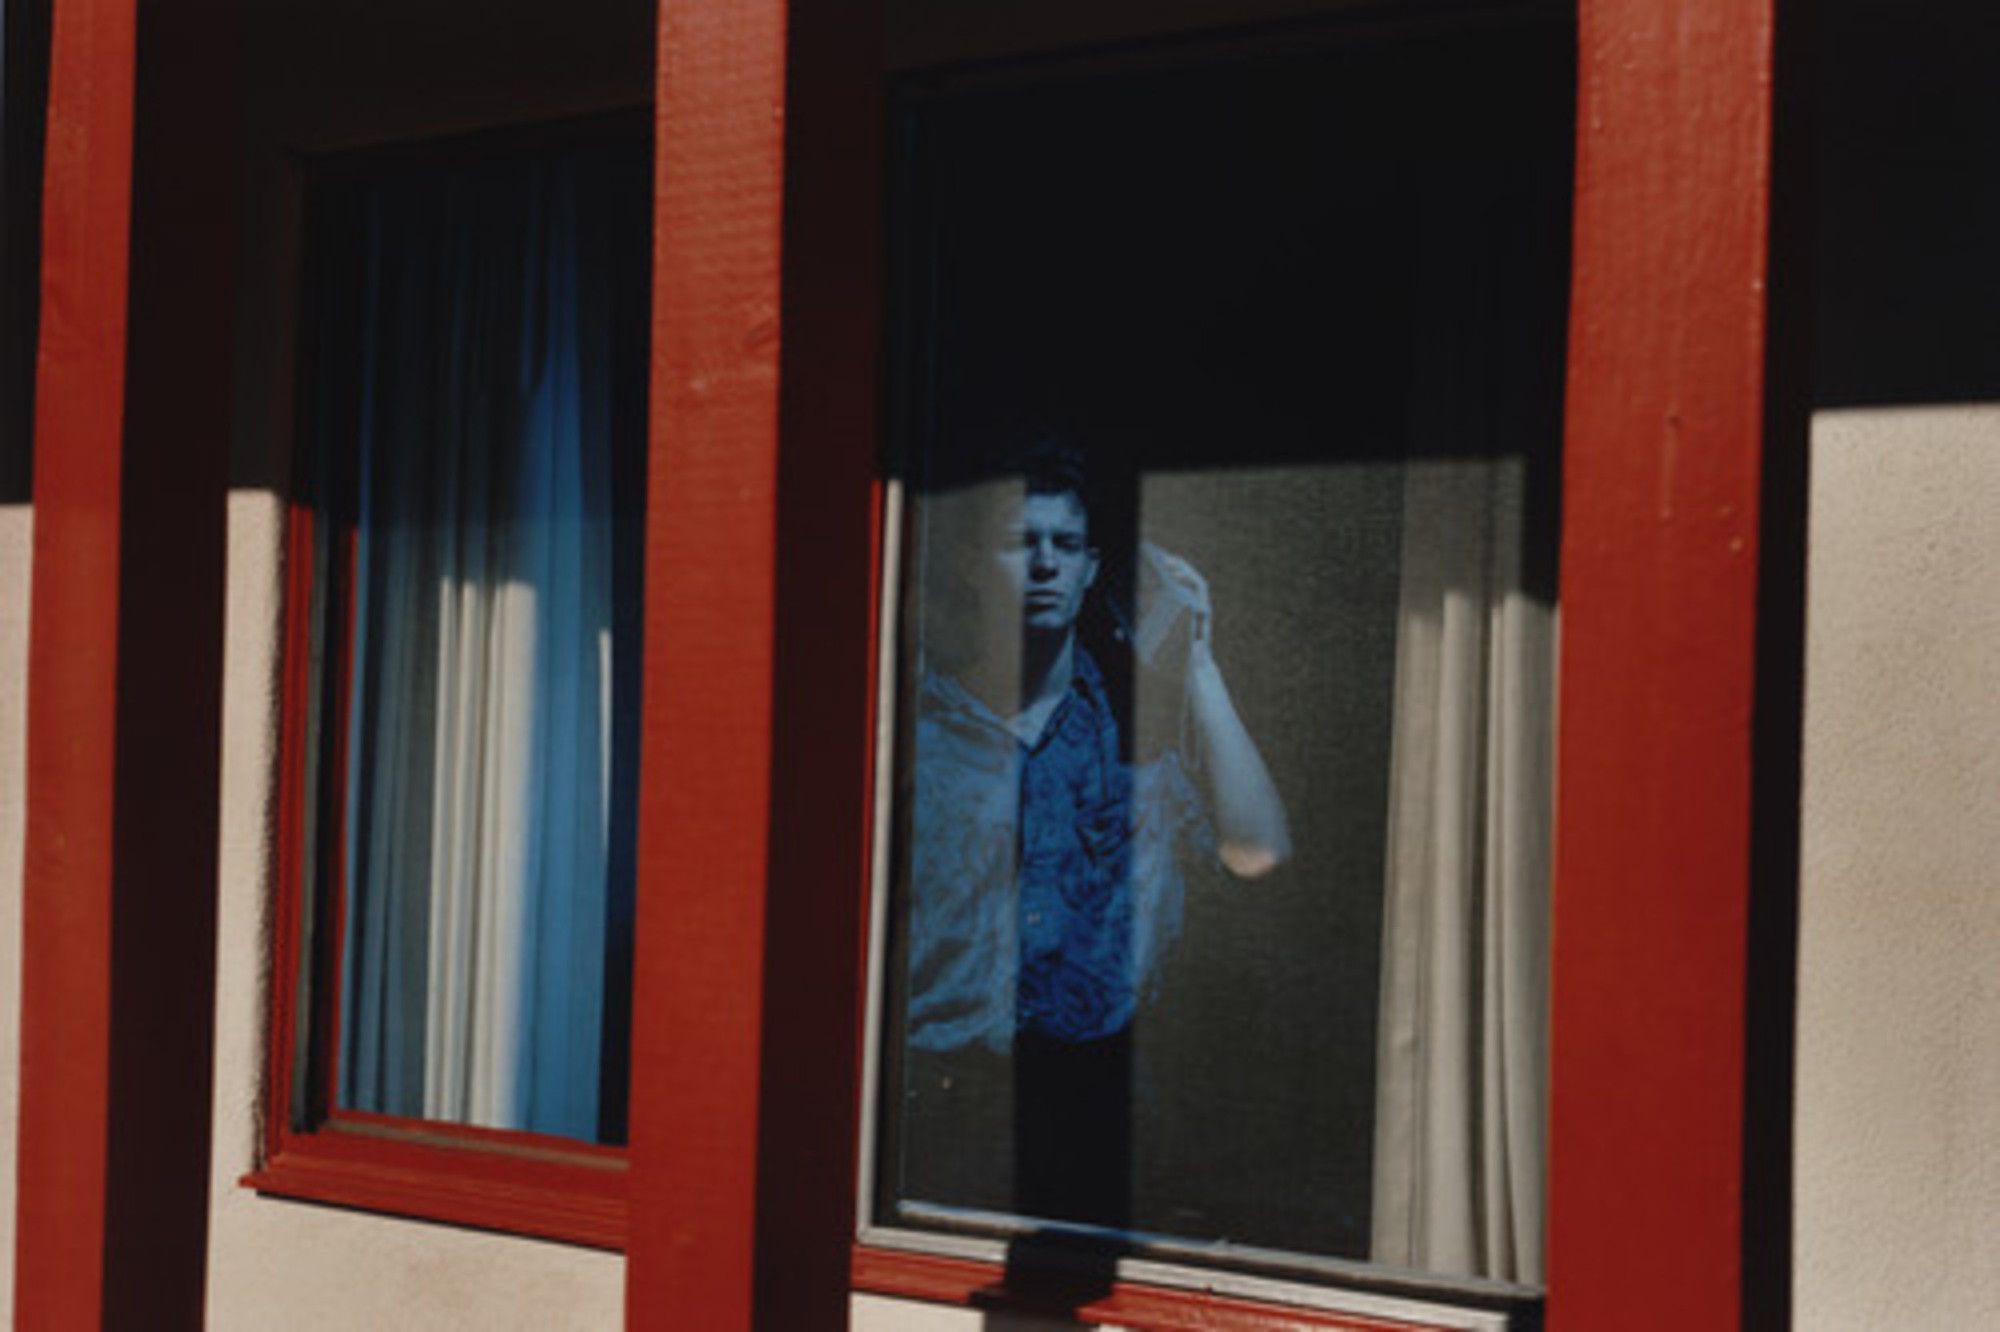 "Philip-Lorca diCorcia. William Charles Everlove; 26 years old; Stockholm, Sweden via Arizona; $40. 1990–92. Chromogenic color print, 23 3/4 x 34 13/16"" (60.4 x 88.5 cm). Gift of Carol and Arthur Goldberg. © 2013 Philip-Lorca diCorcia, courtesy David Zwirner, New York"